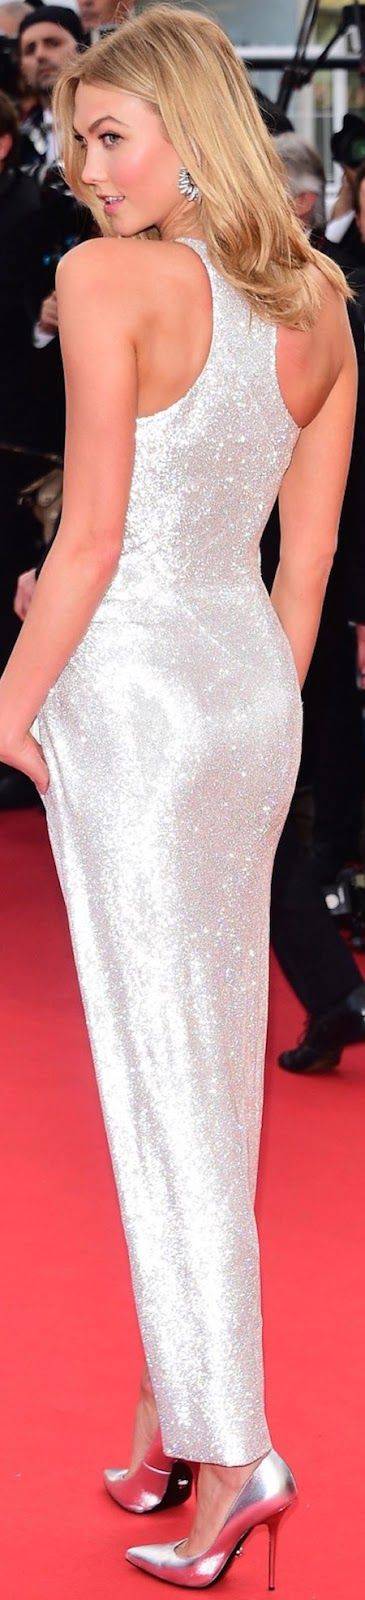 Sparkle Brighter... - Karlie Kloss in Versace 2015 Cannes Film Festival